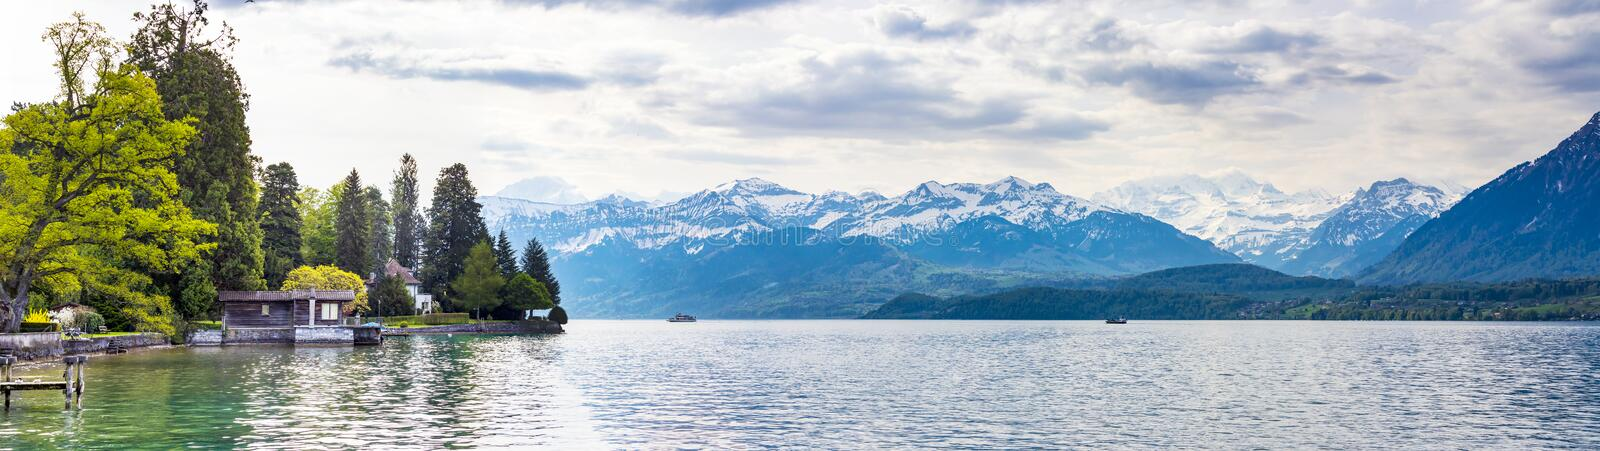 Panorama view in lake Thun and view of Bernese Alps mountain Berne, Switzerland. Europe royalty free stock image